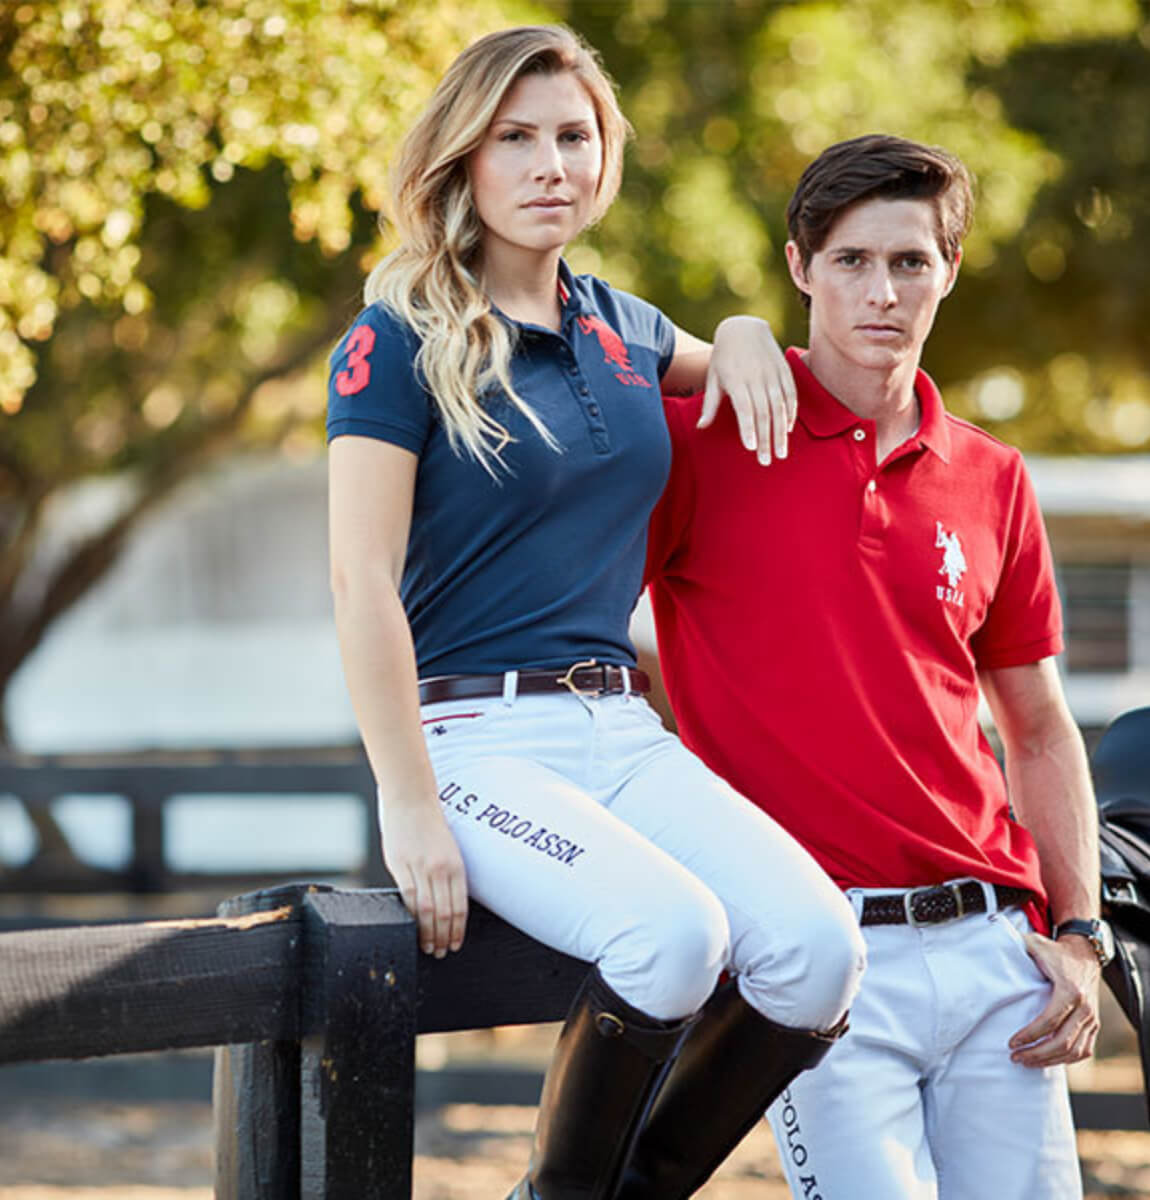 US Polo Association coupons and cash back